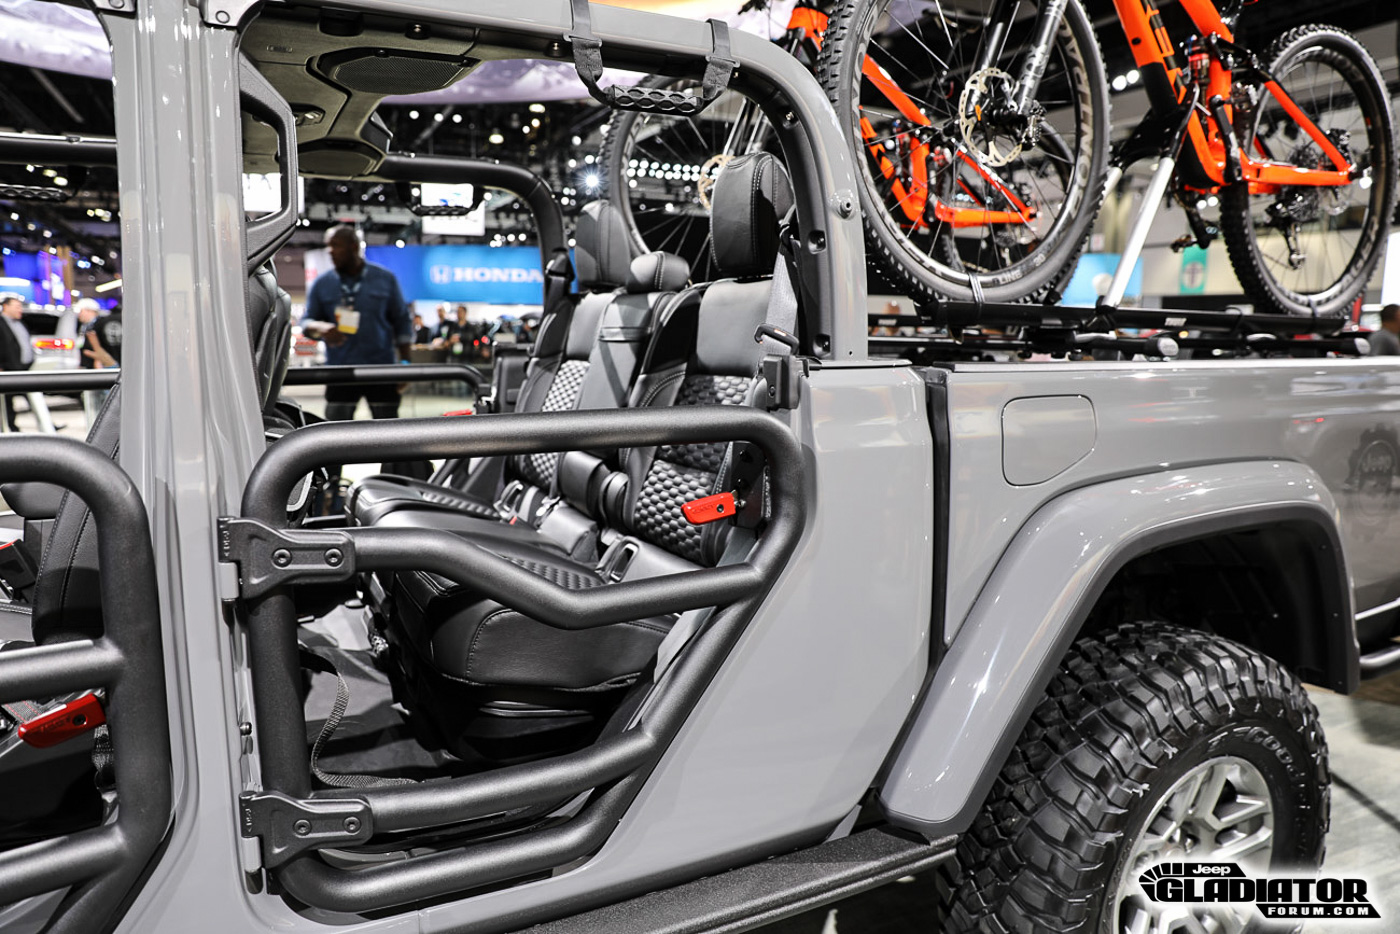 Sting-Gray--Jeep-Gladiator-JT-Pickup-Truck-Mopar-Accessories-LA-Auto-Show-42.jpg